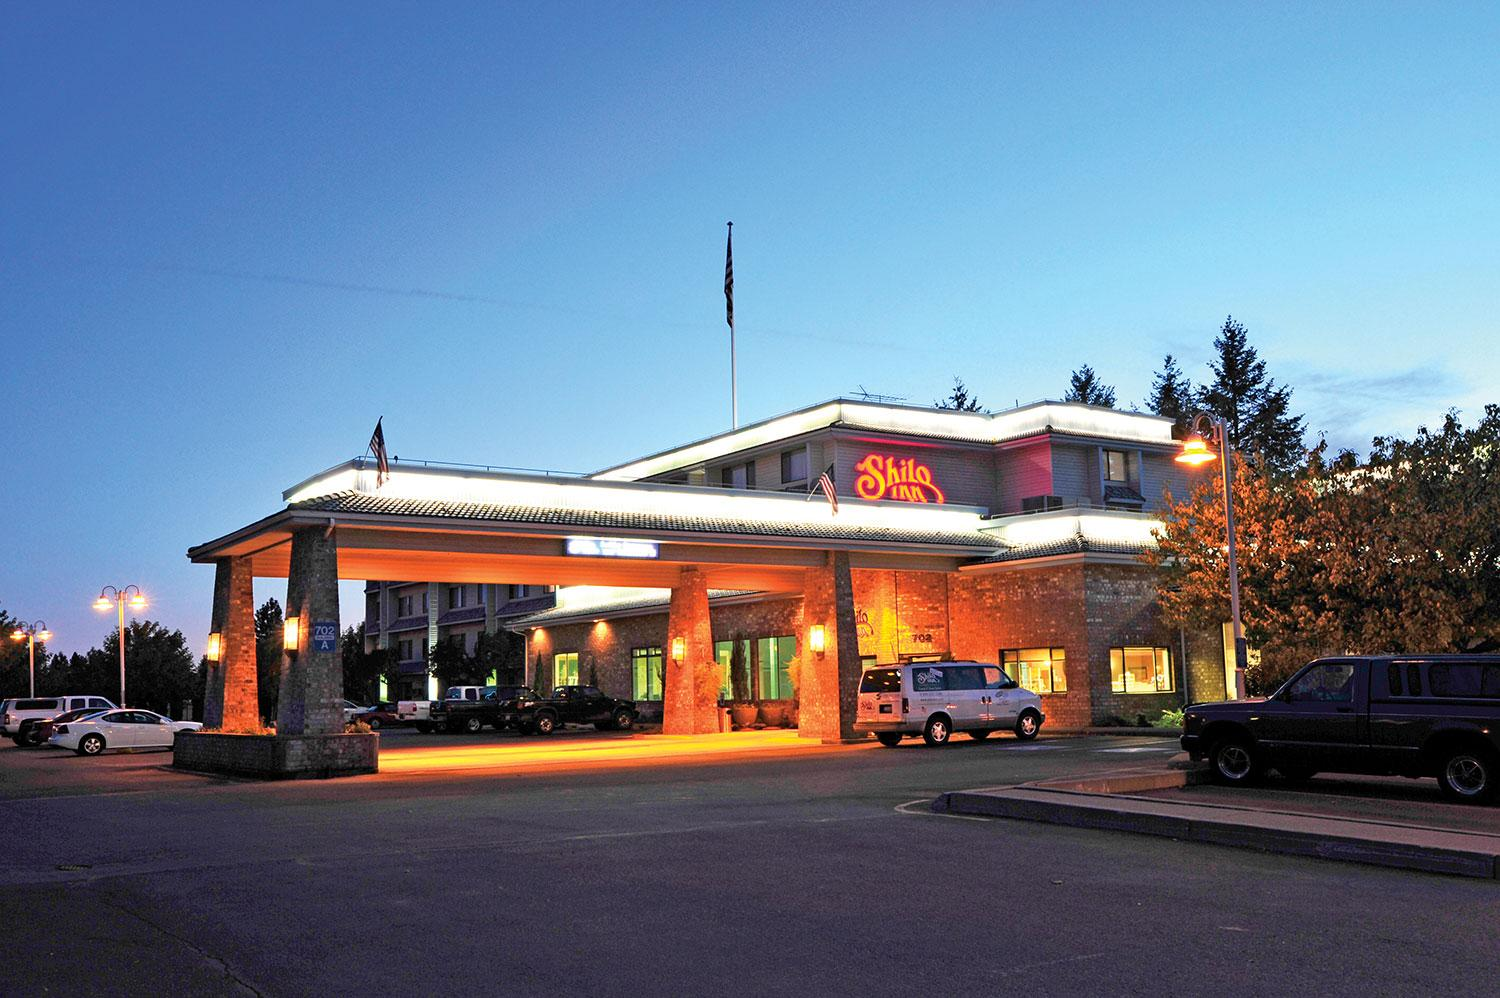 The Shilo Inn And Suites Coeur D Alene Has Been Sold Will Be Renovated